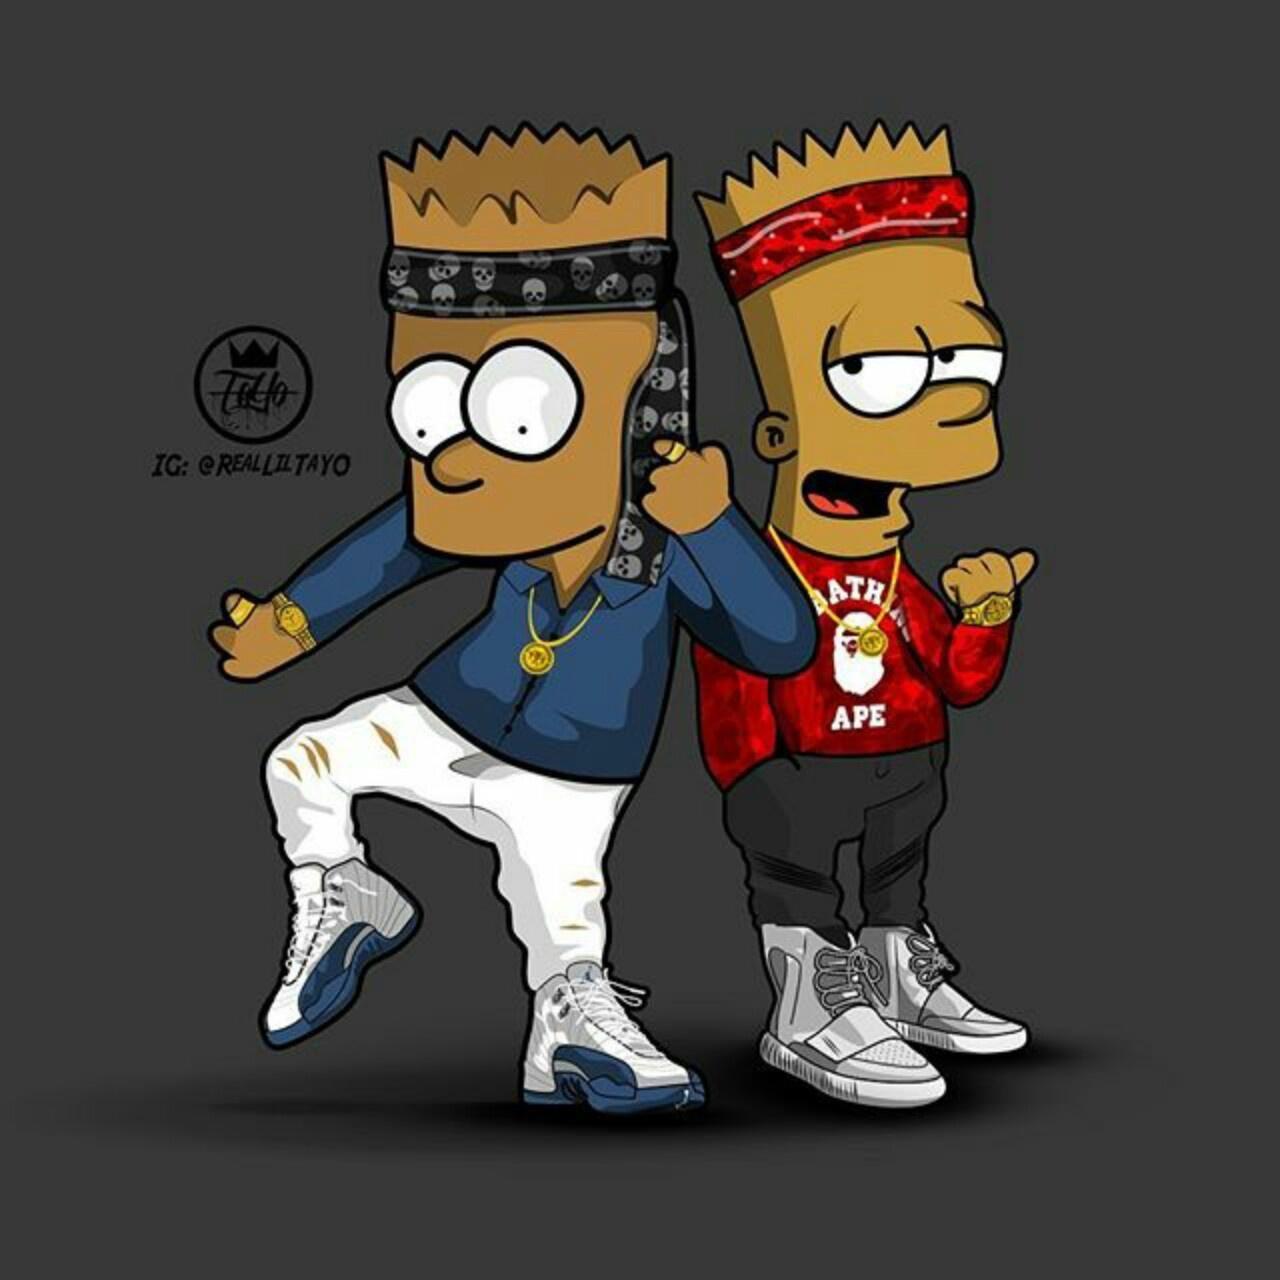 Download Bart Simpson Wallpaper By Cesarbl32 6b Free On Zedge Now Browse Millions Of Popular 2017 Wallpap Bart Simpson Art Simpsons Art Simpsons Drawings